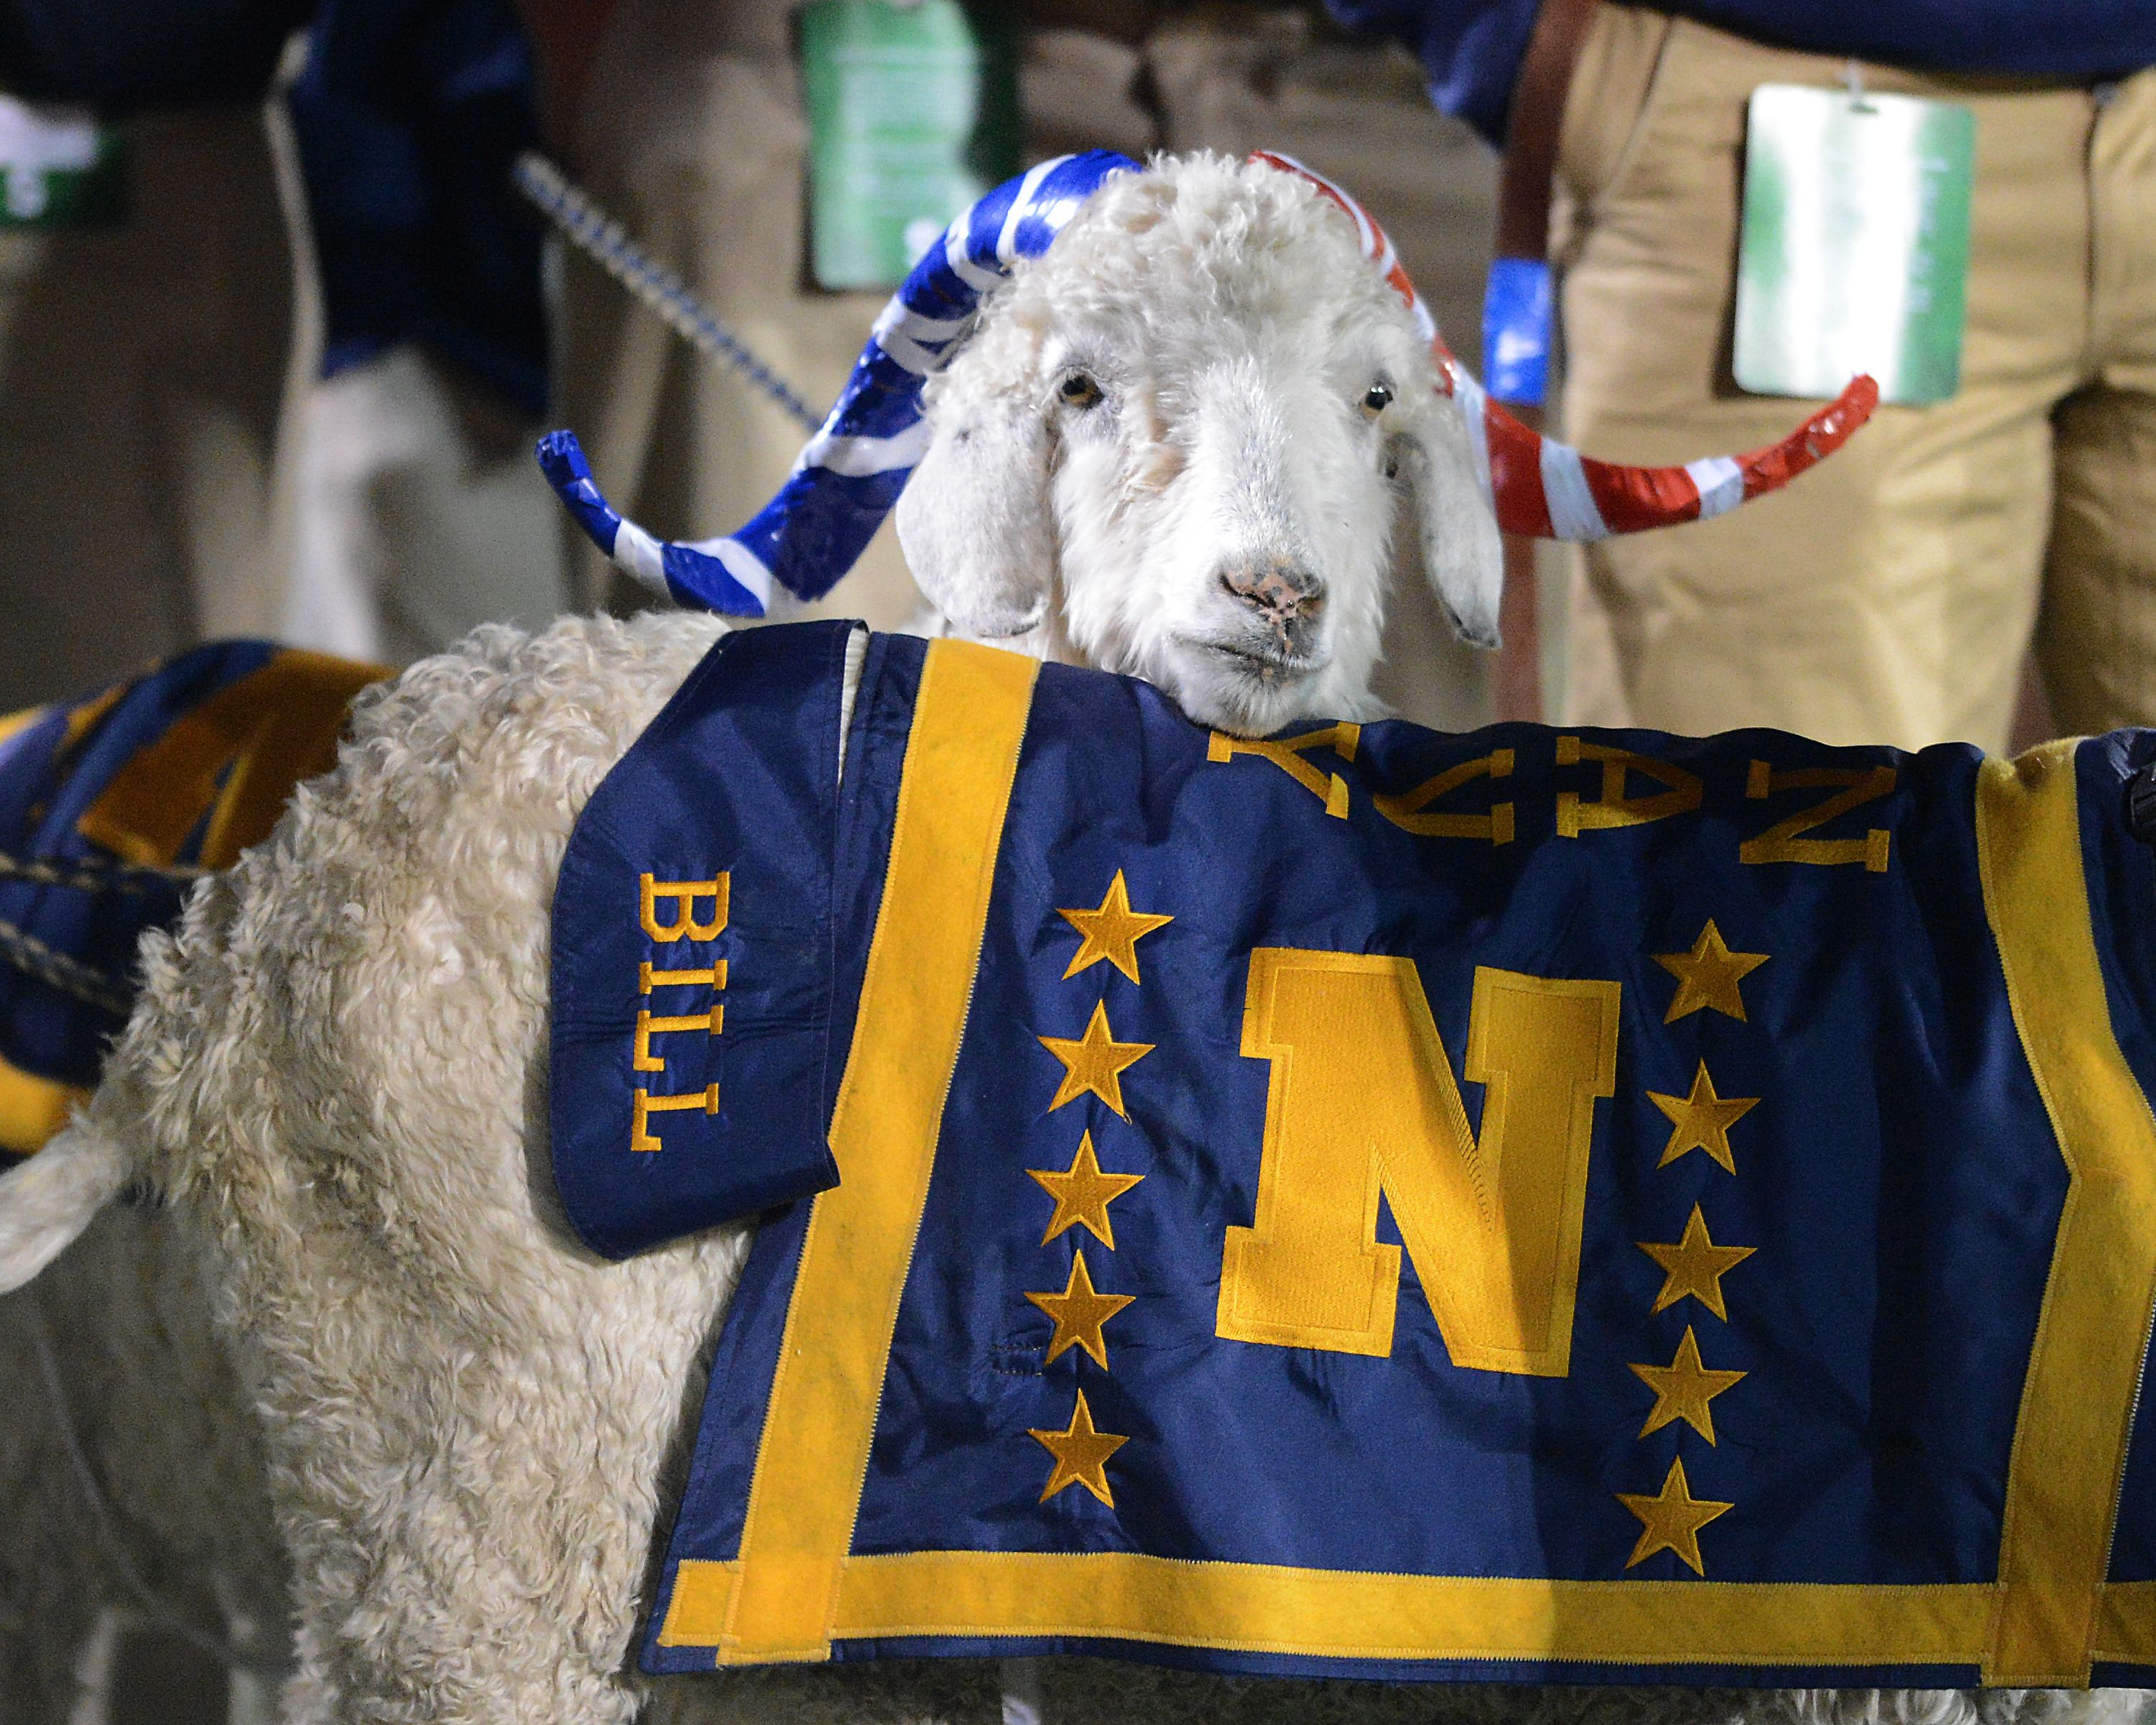 Bill the goat at the texas state game 2012 navy